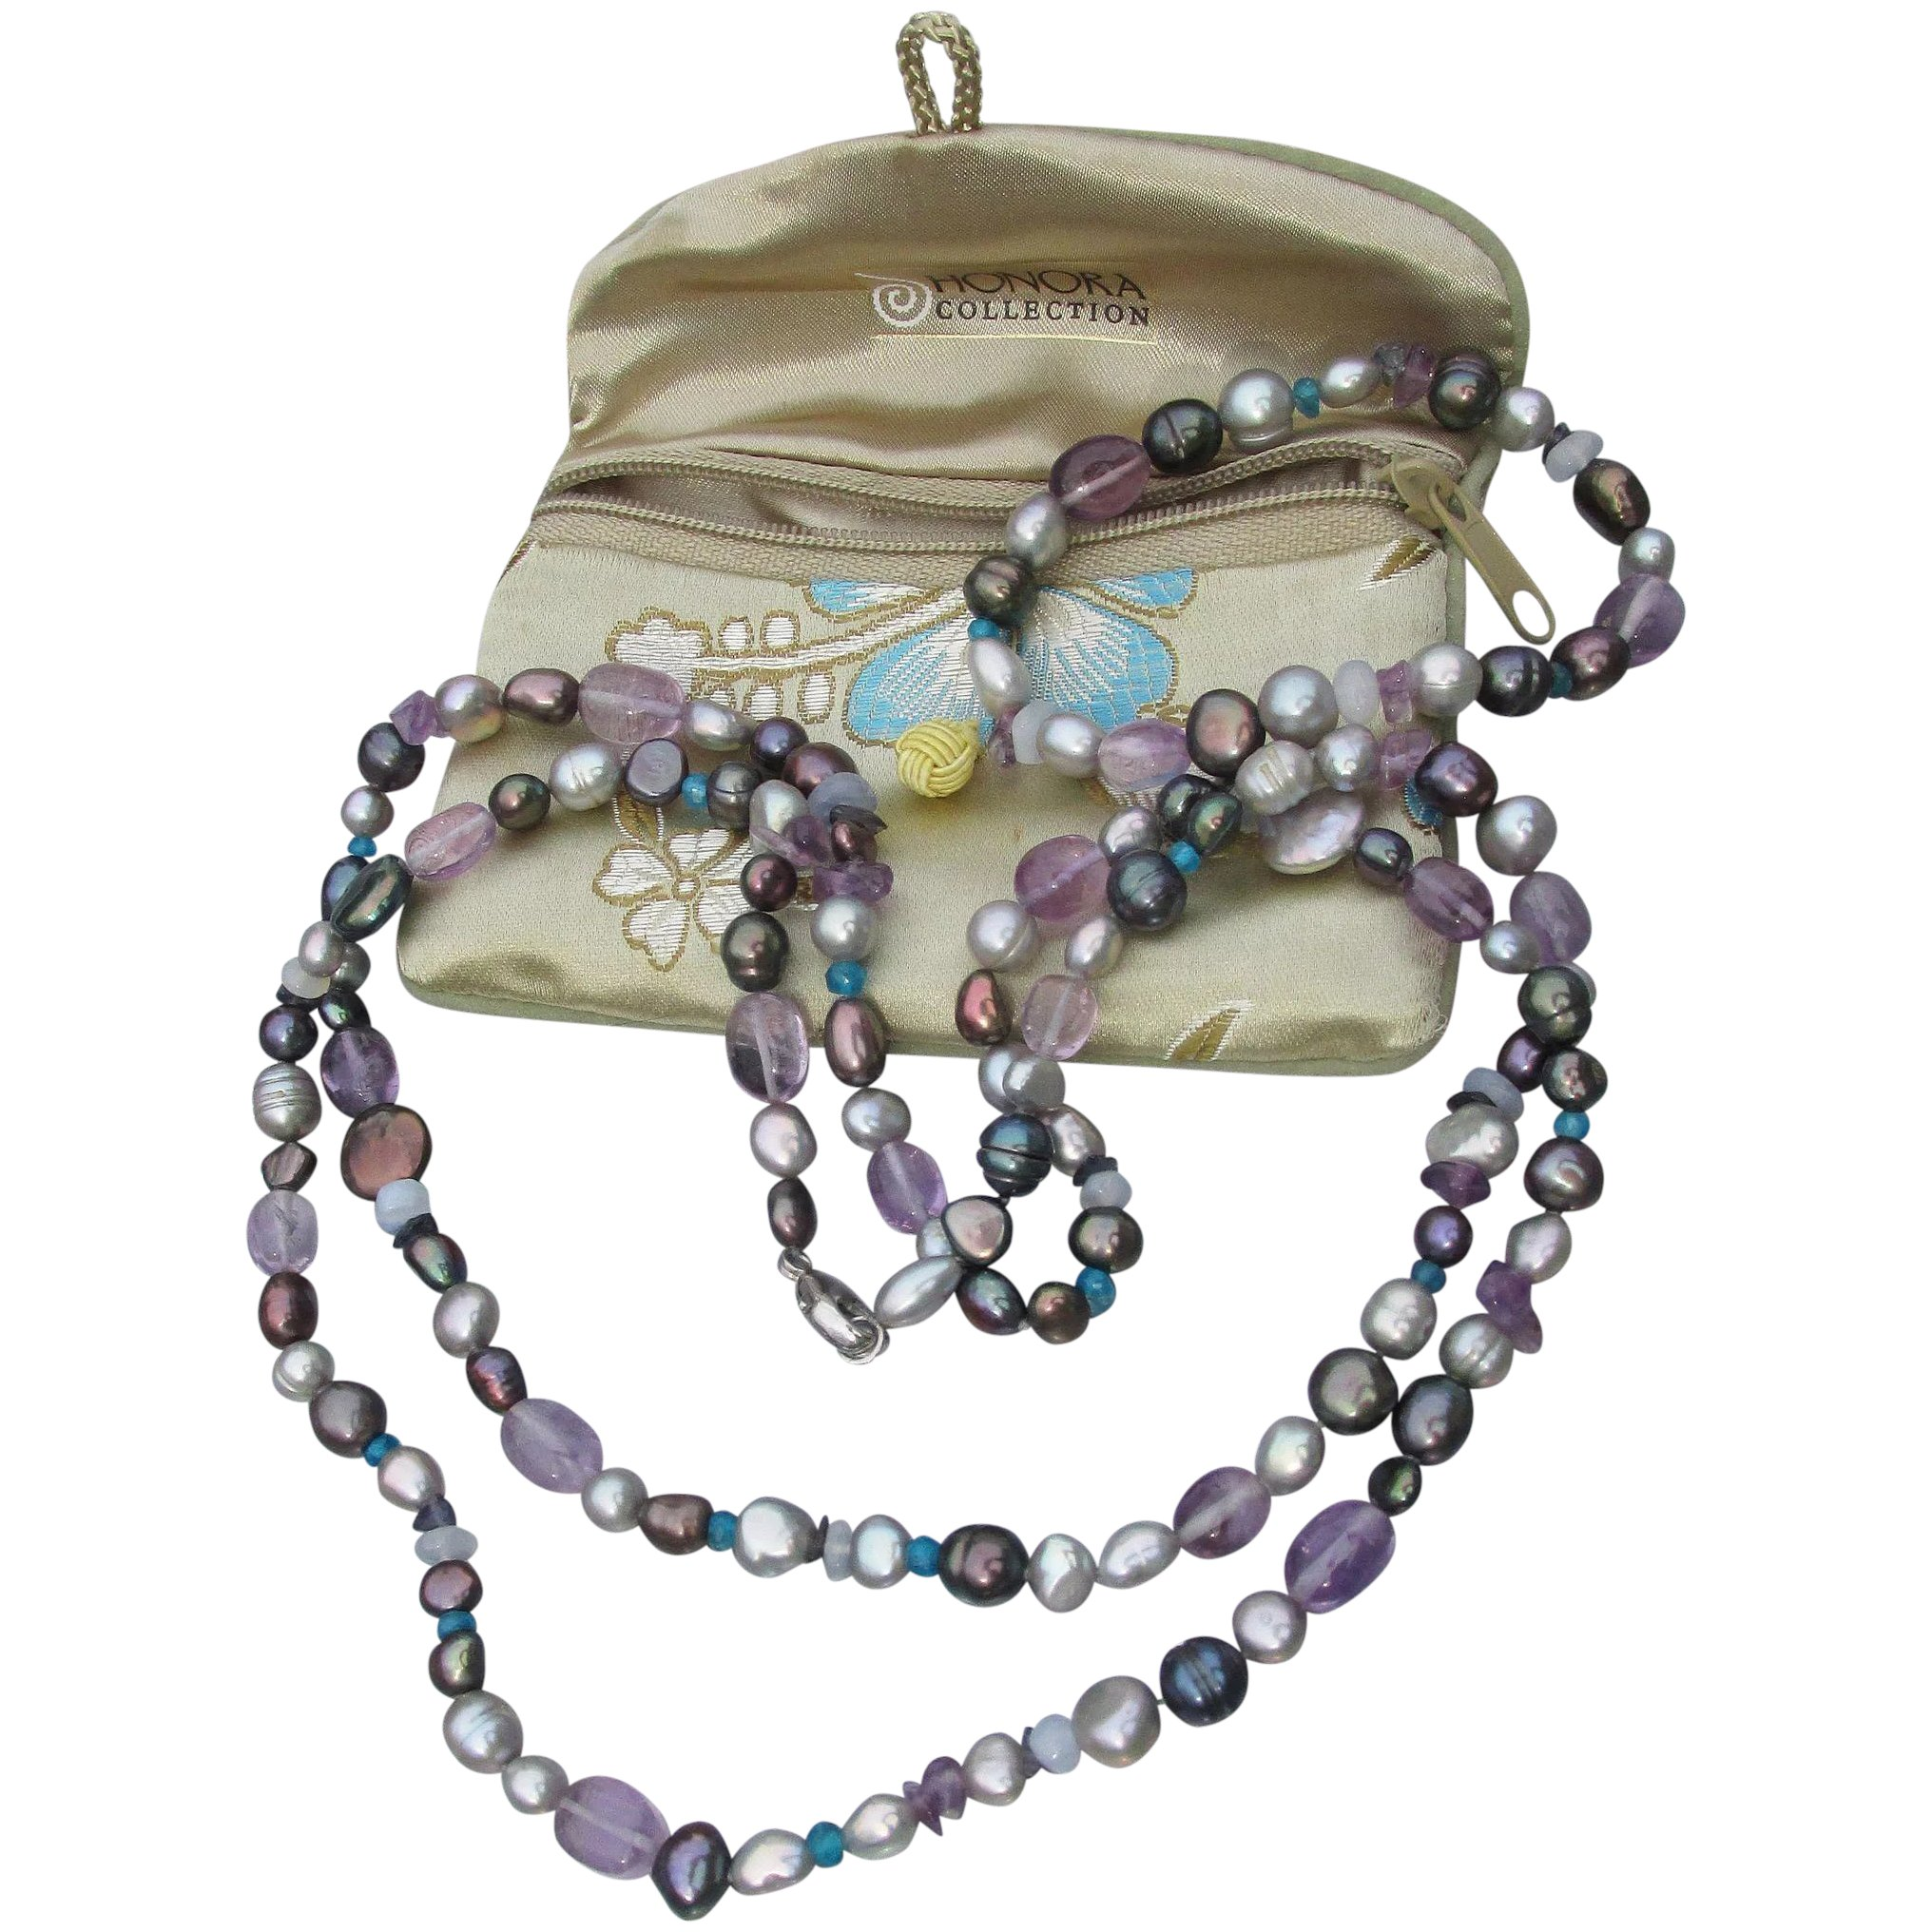 Honora Big Peacock Cultured Freshwater Pearl w Amethyst Nuggets LONG Necklace /& Bracelet Set Mint In Pouch